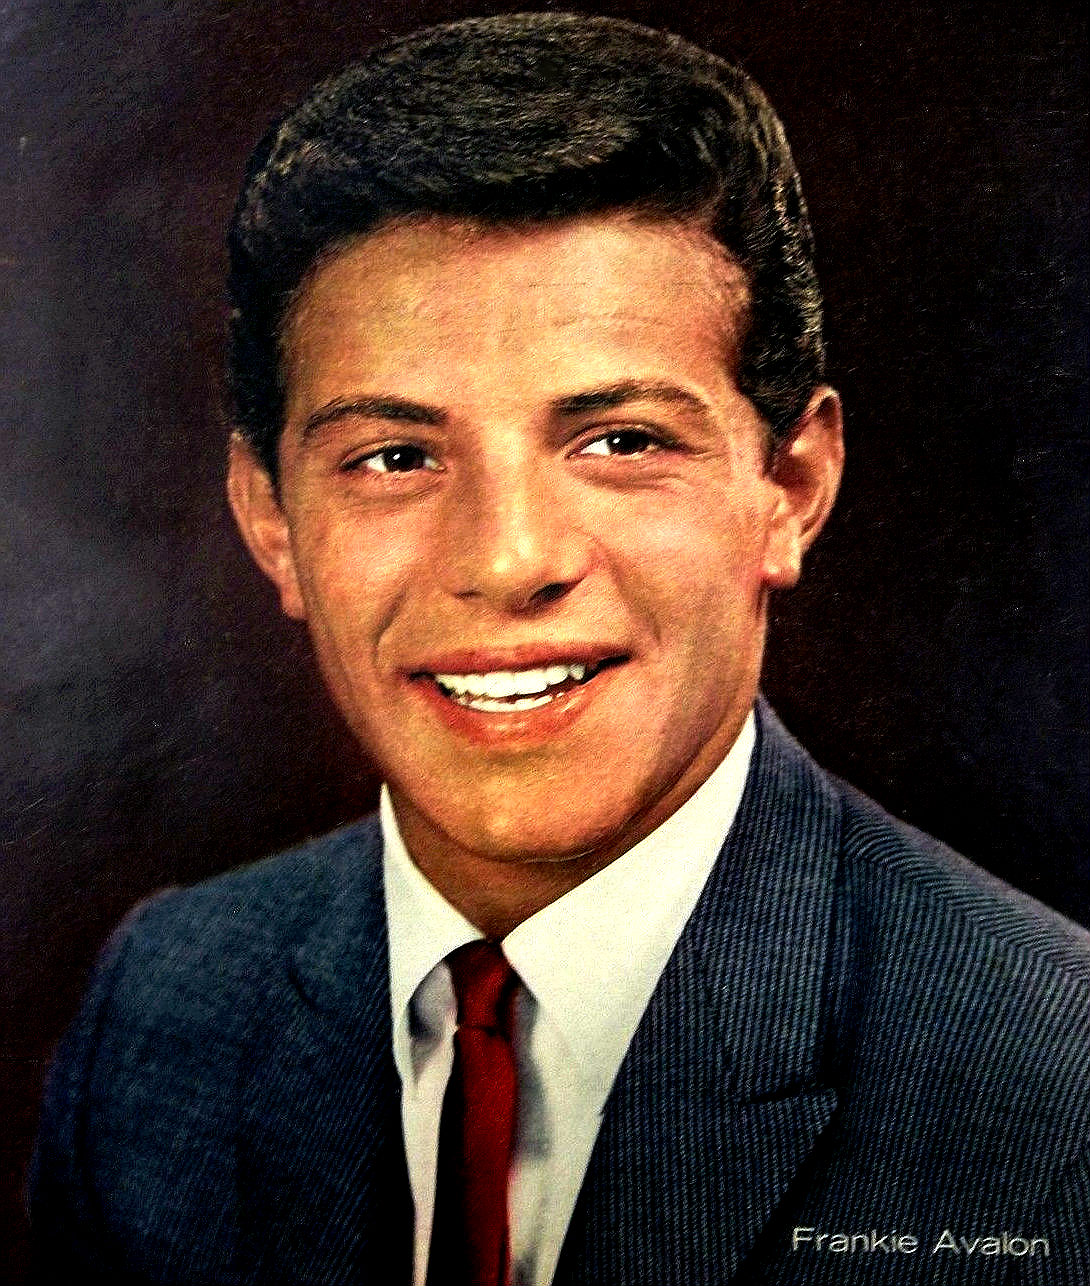 Frankie Avalon Pics inside file:frankie avalon 1962 - wikimedia commons